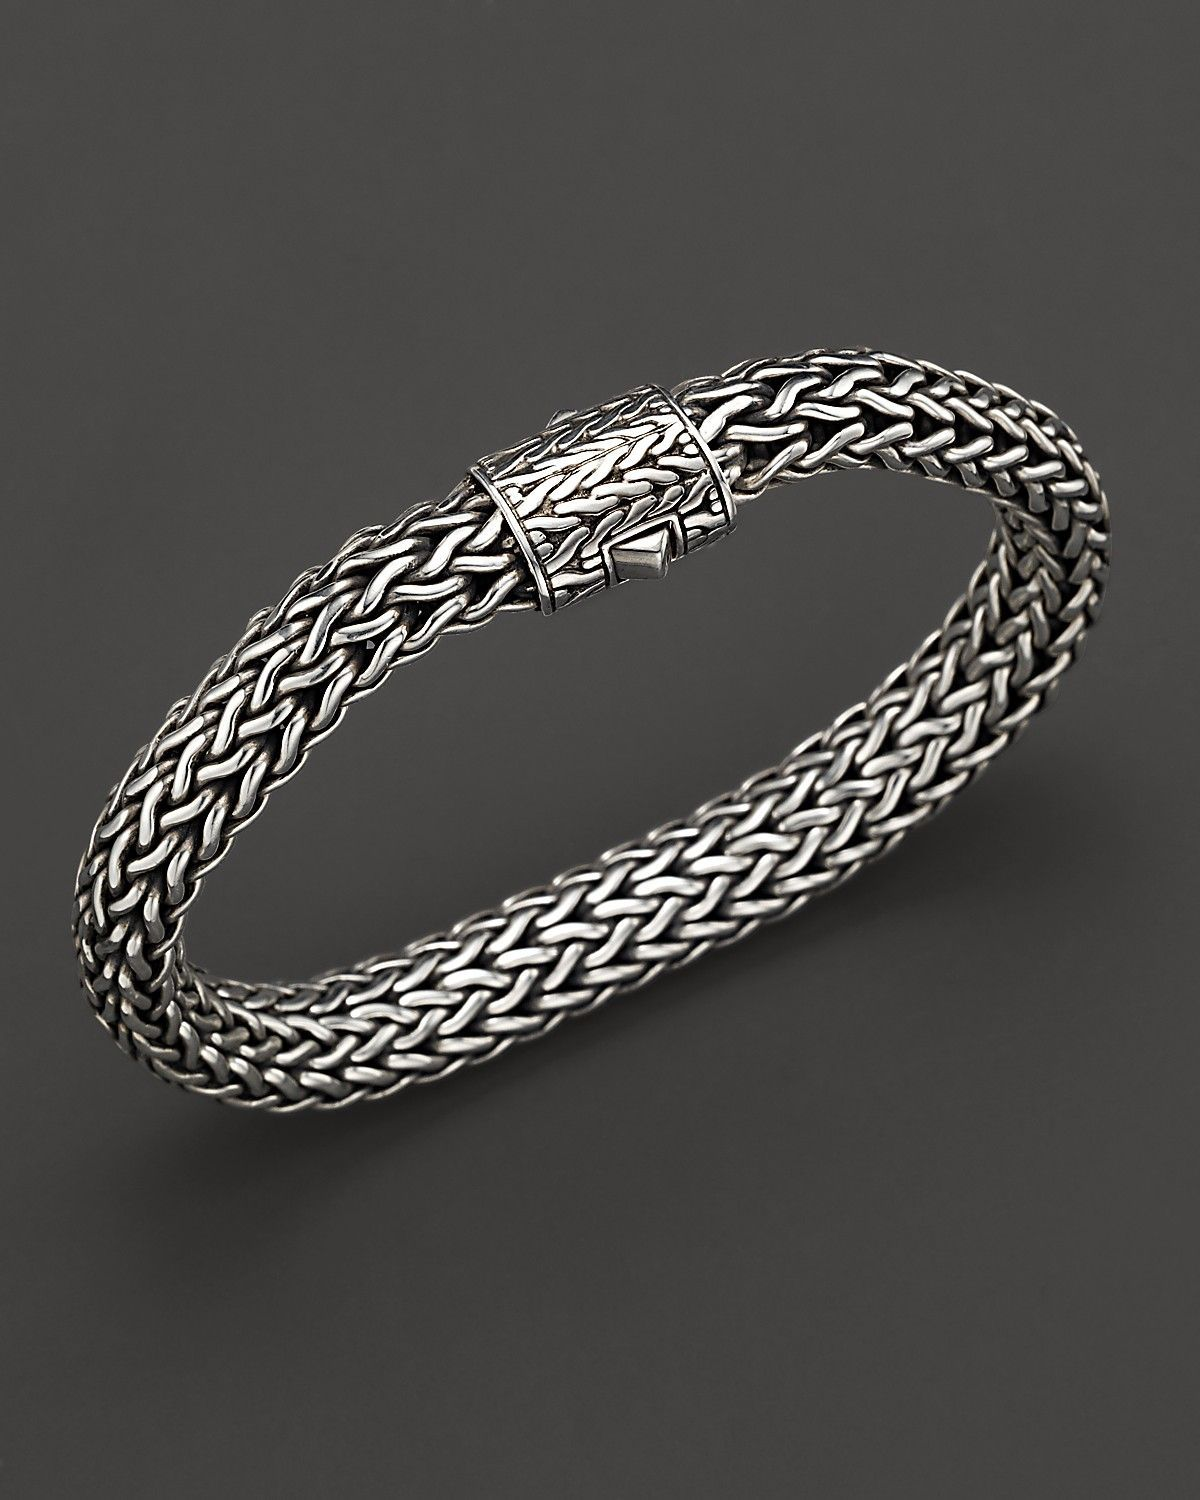 eus stackable silver jewelry bangles bamboo style hinged large bracelets chic bling bracelet sterling bangle